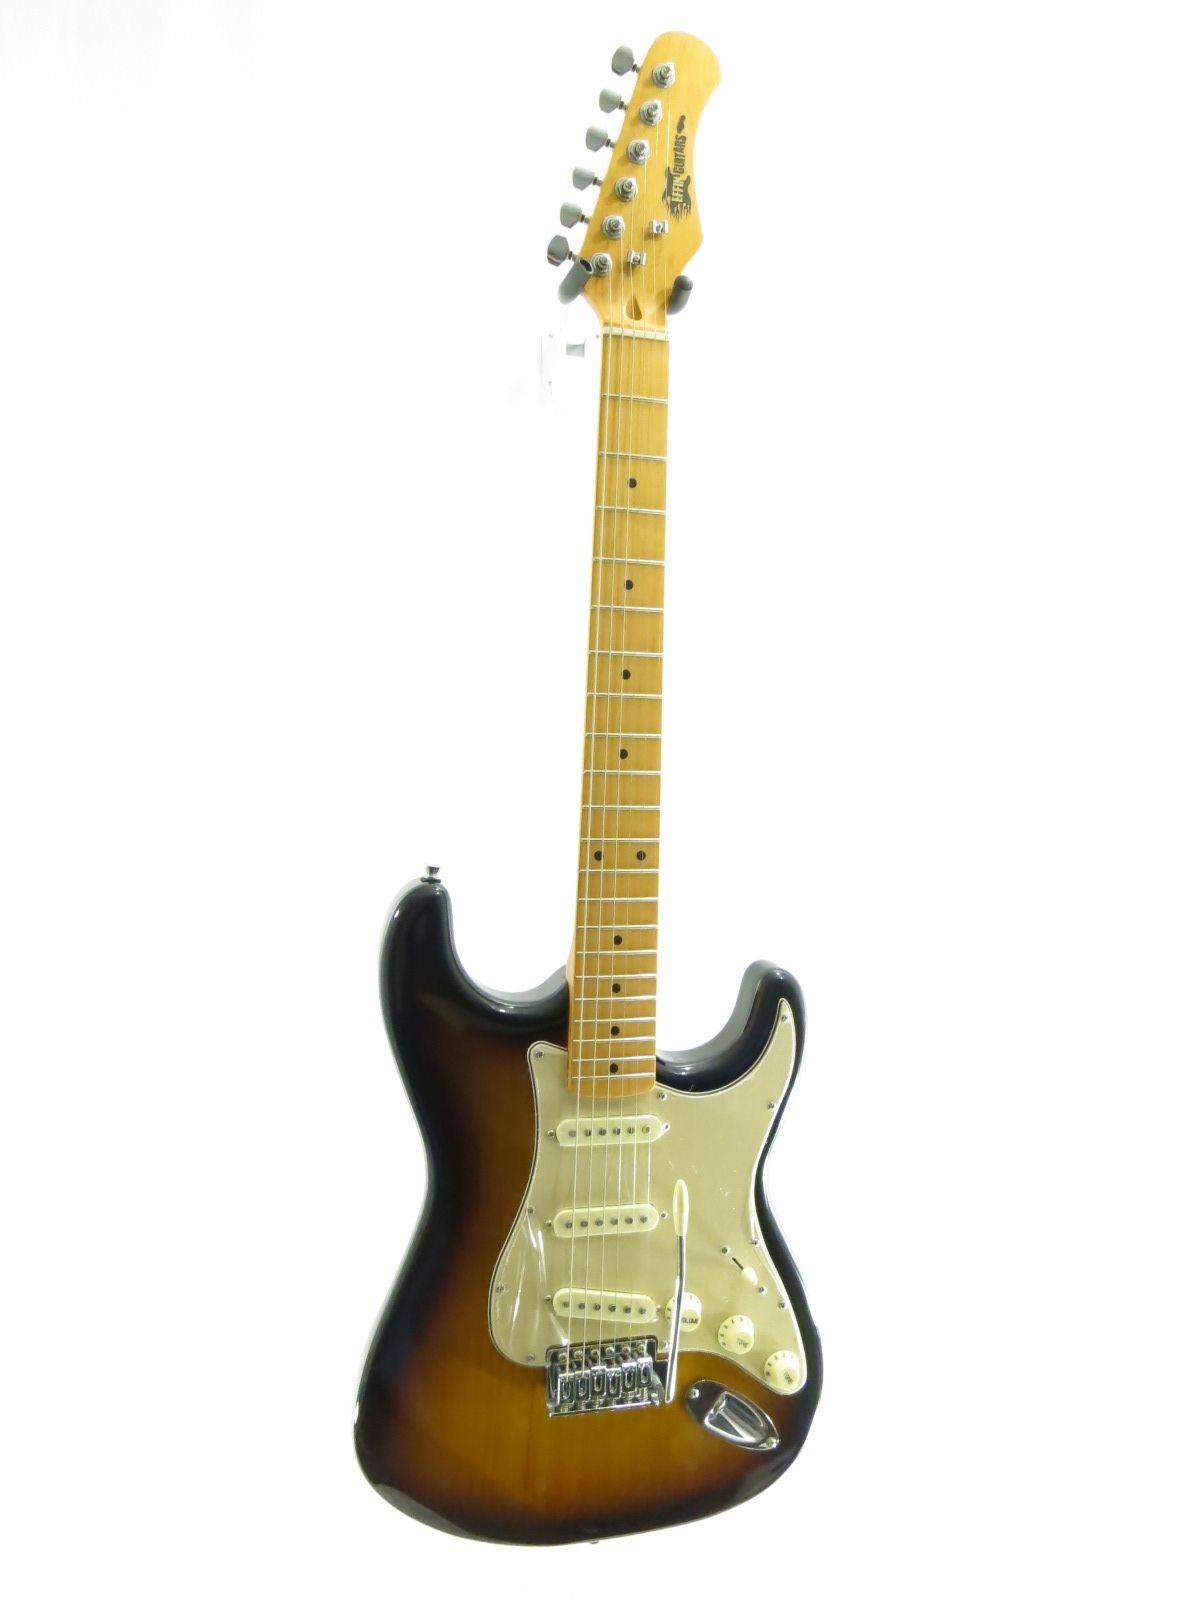 Effin Guitars Smelly//SB Gloss Sunburst Finish T-Style Electric solid body Guitar